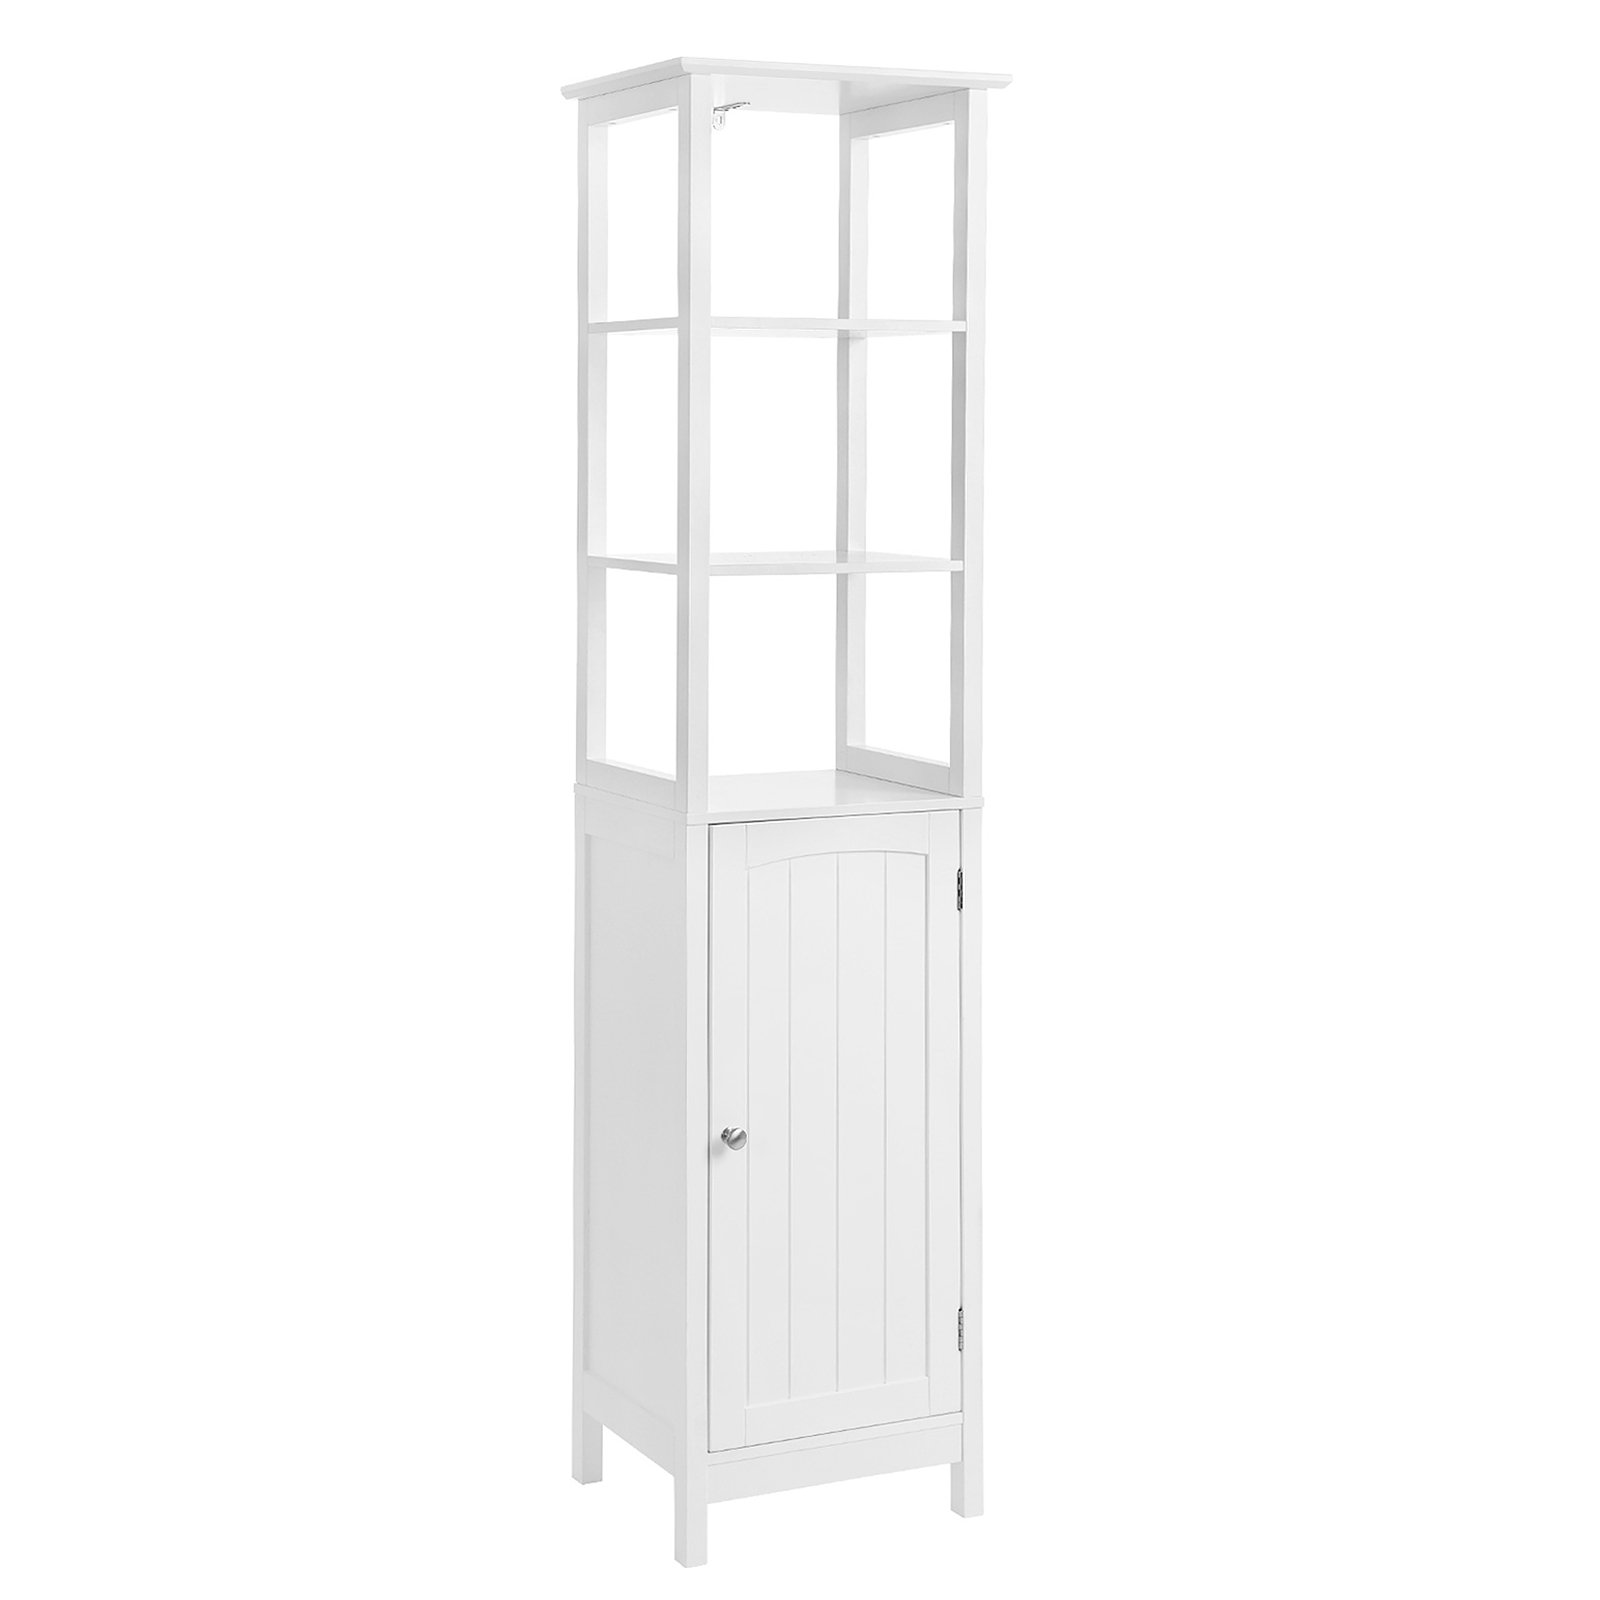 VASAGLE Floor Cabinet, Multifunctional Bathroom Storage Cabinet with 3 Tier Shelf, Free Standing Linen Tower, Wooden, White UBBC63WT by VASAGLE